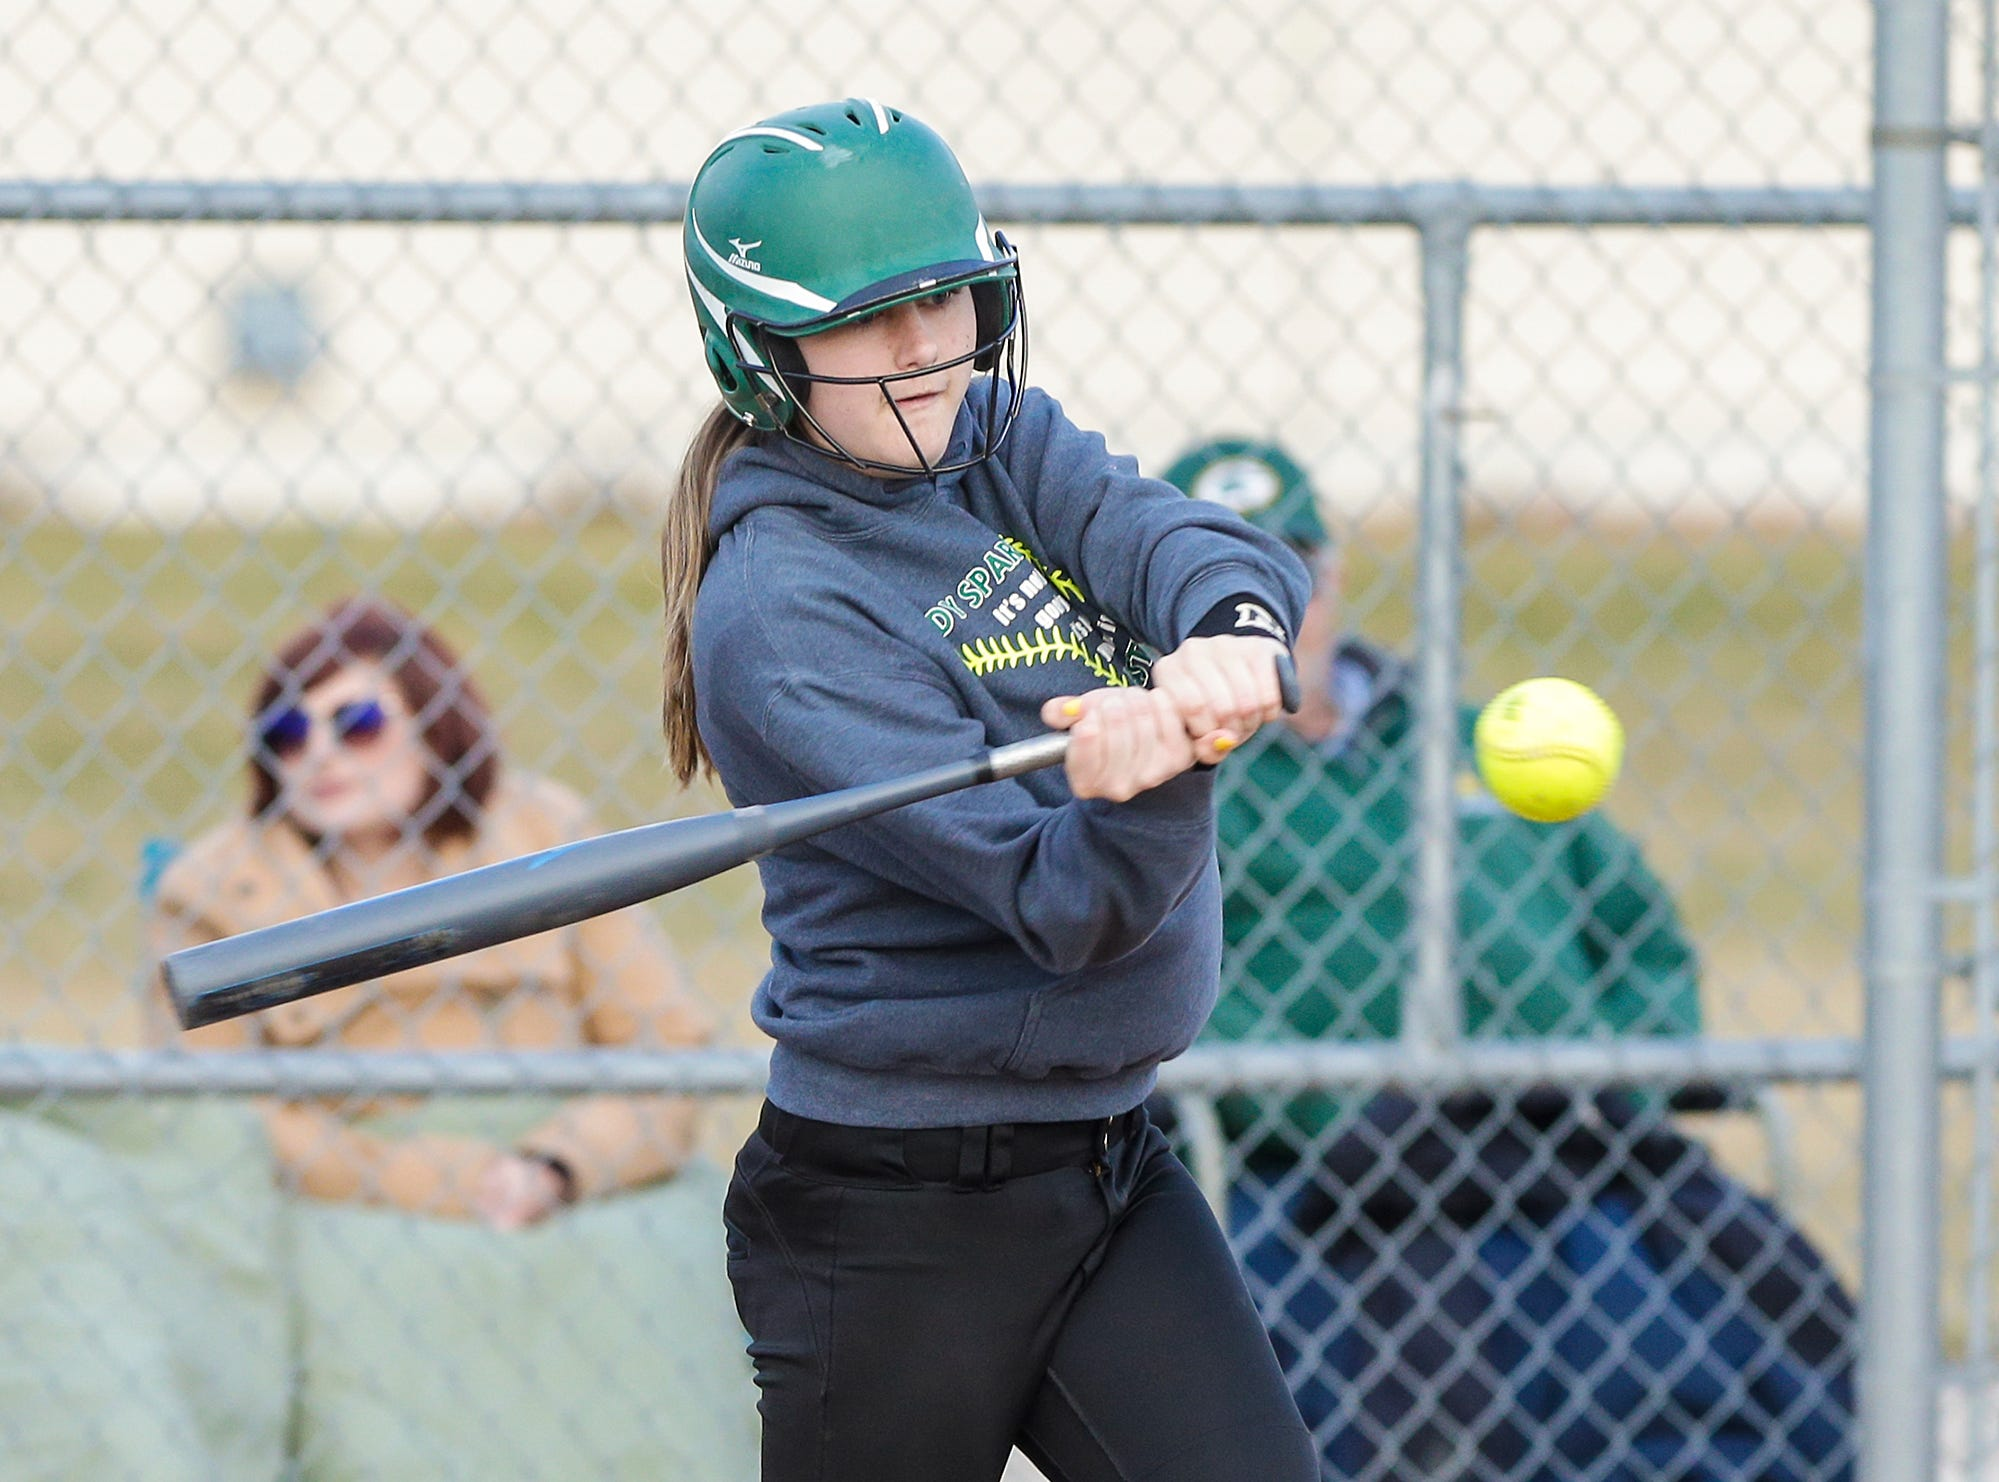 Laconia High School softball's Kennedy Krohn hits a grand slam against Winnebago Lutheran Academy April 9, 2019 in the 5th inning during their game in Fond du Lac, Wis. Laconia won the game 25-9. Doug Raflik/USA TODAY NETWORK-Wisconsin